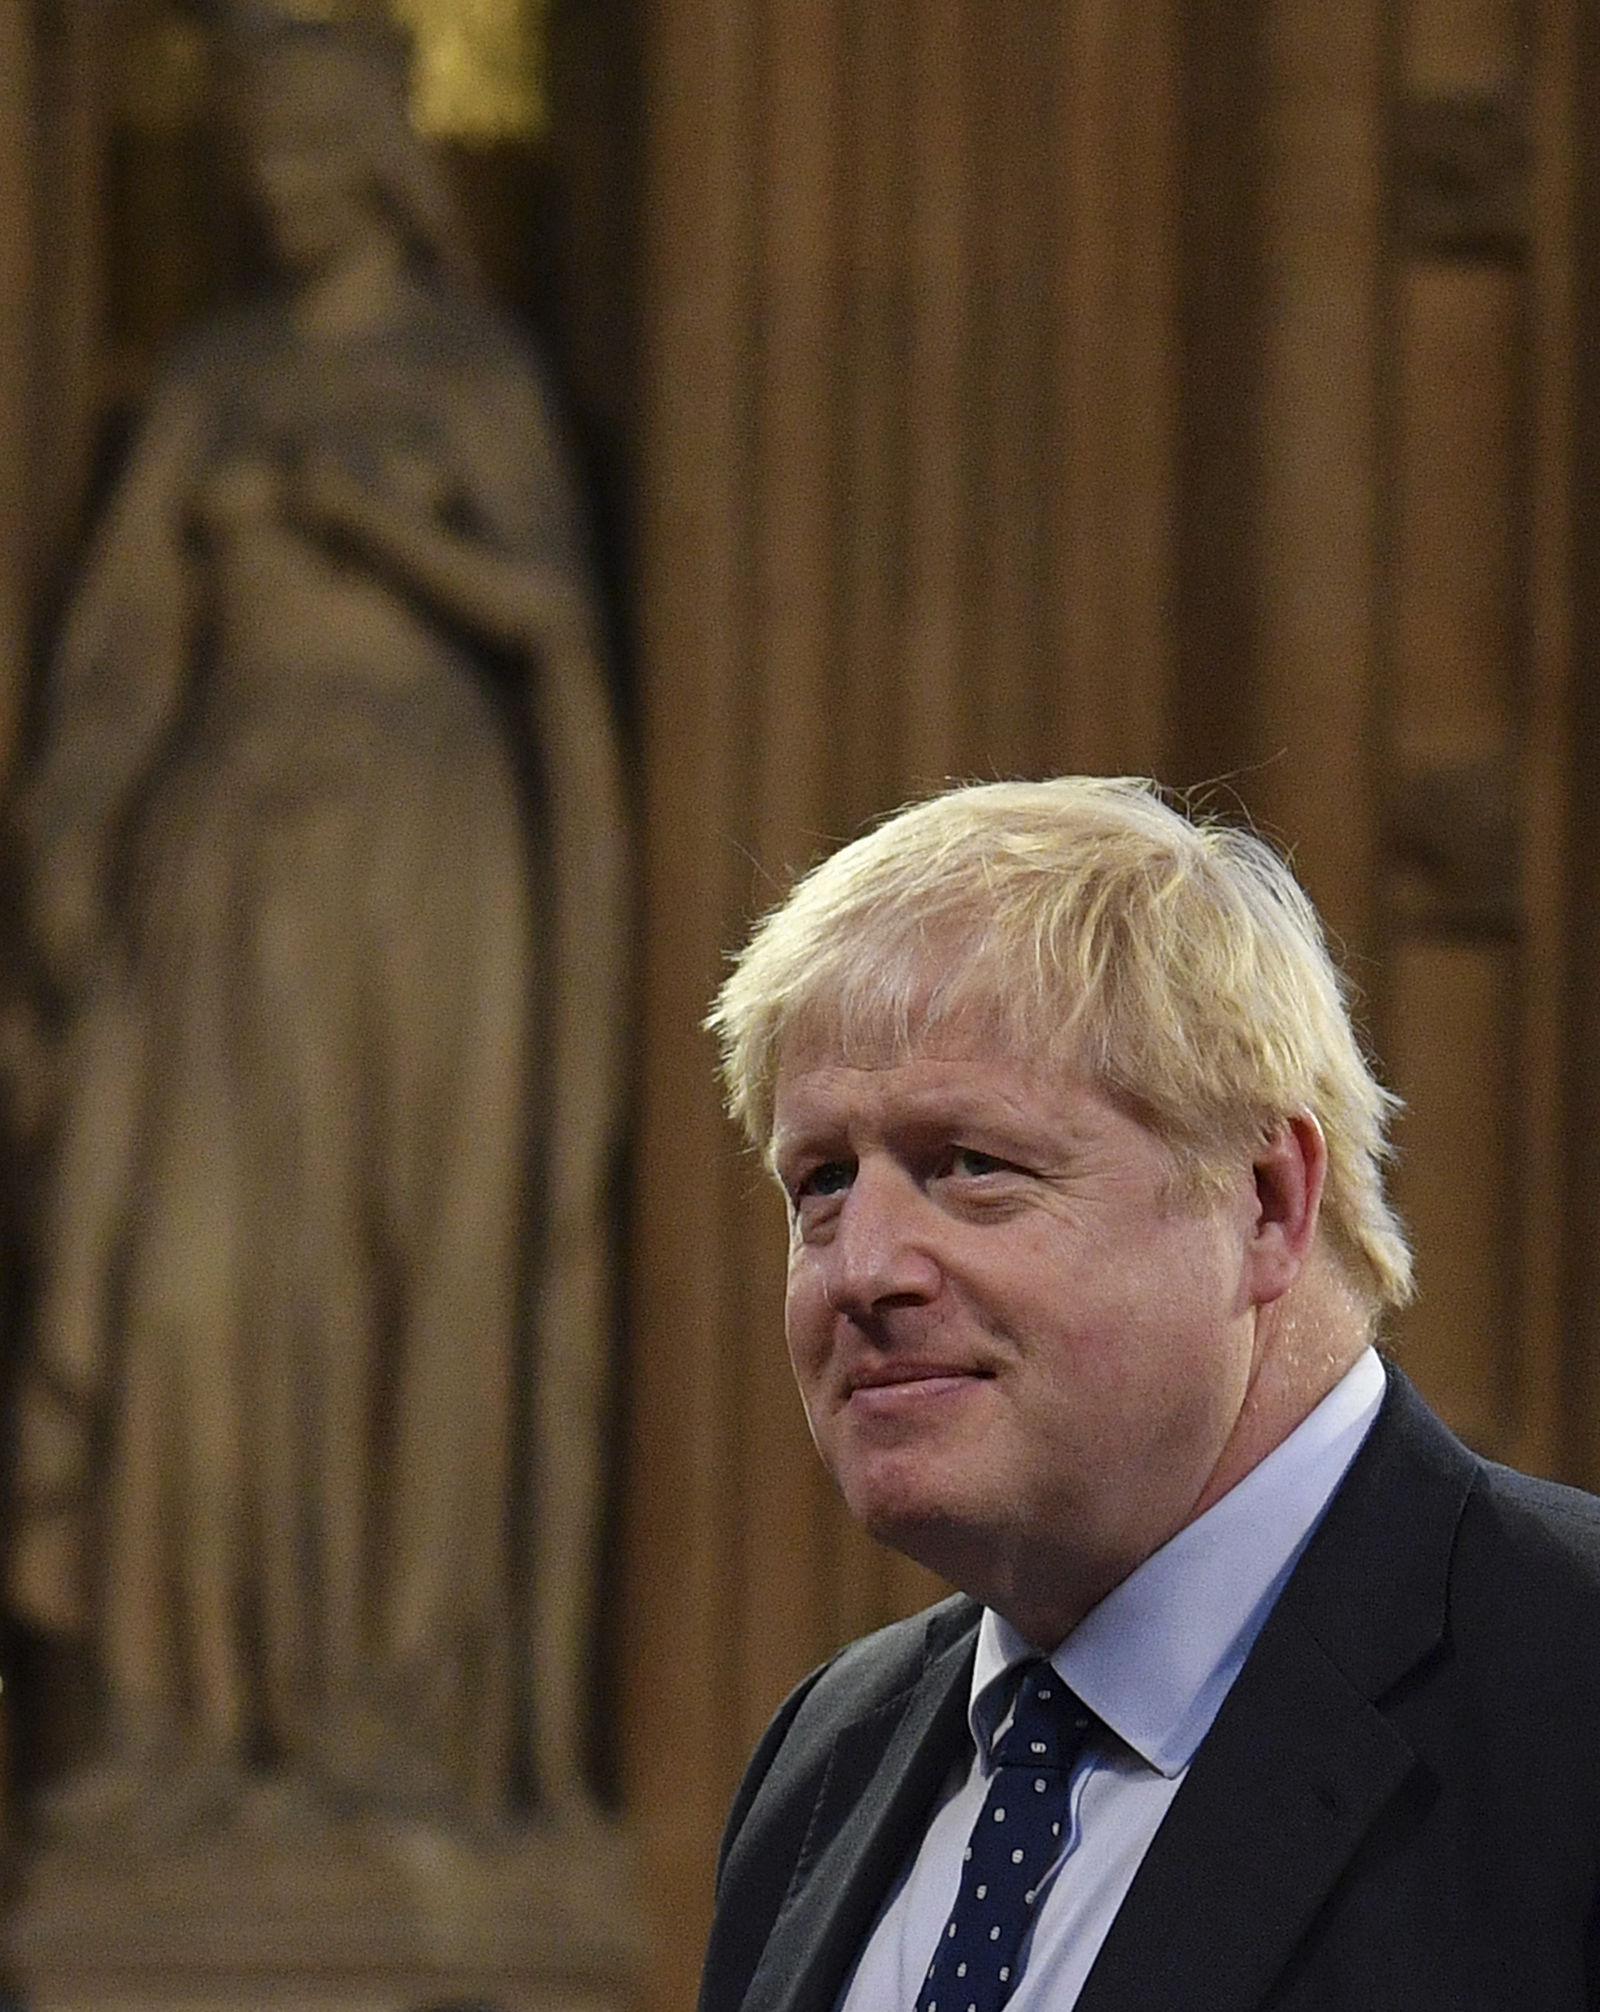 Britain's Prime Minister Boris Johnson attends the official State Opening of Parliament in London, Monday Oct. 14, 2019. (Daniel Leal-Olivas/Pool via AP)